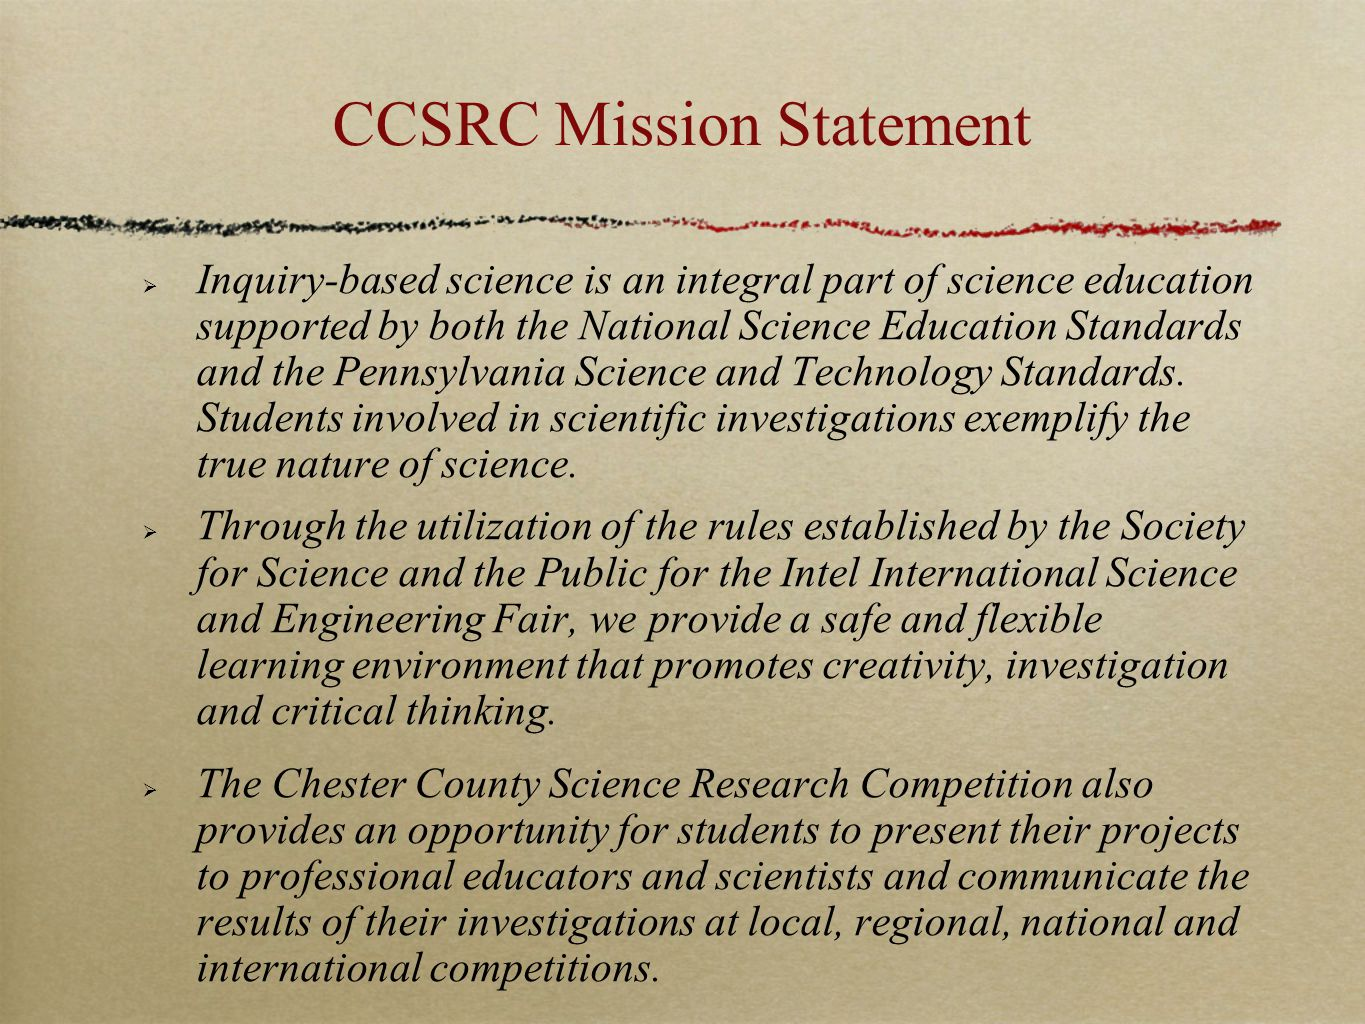 CCSRC Mission Statement  Inquiry-based science is an integral part of science education supported by both the National Science Education Standards an